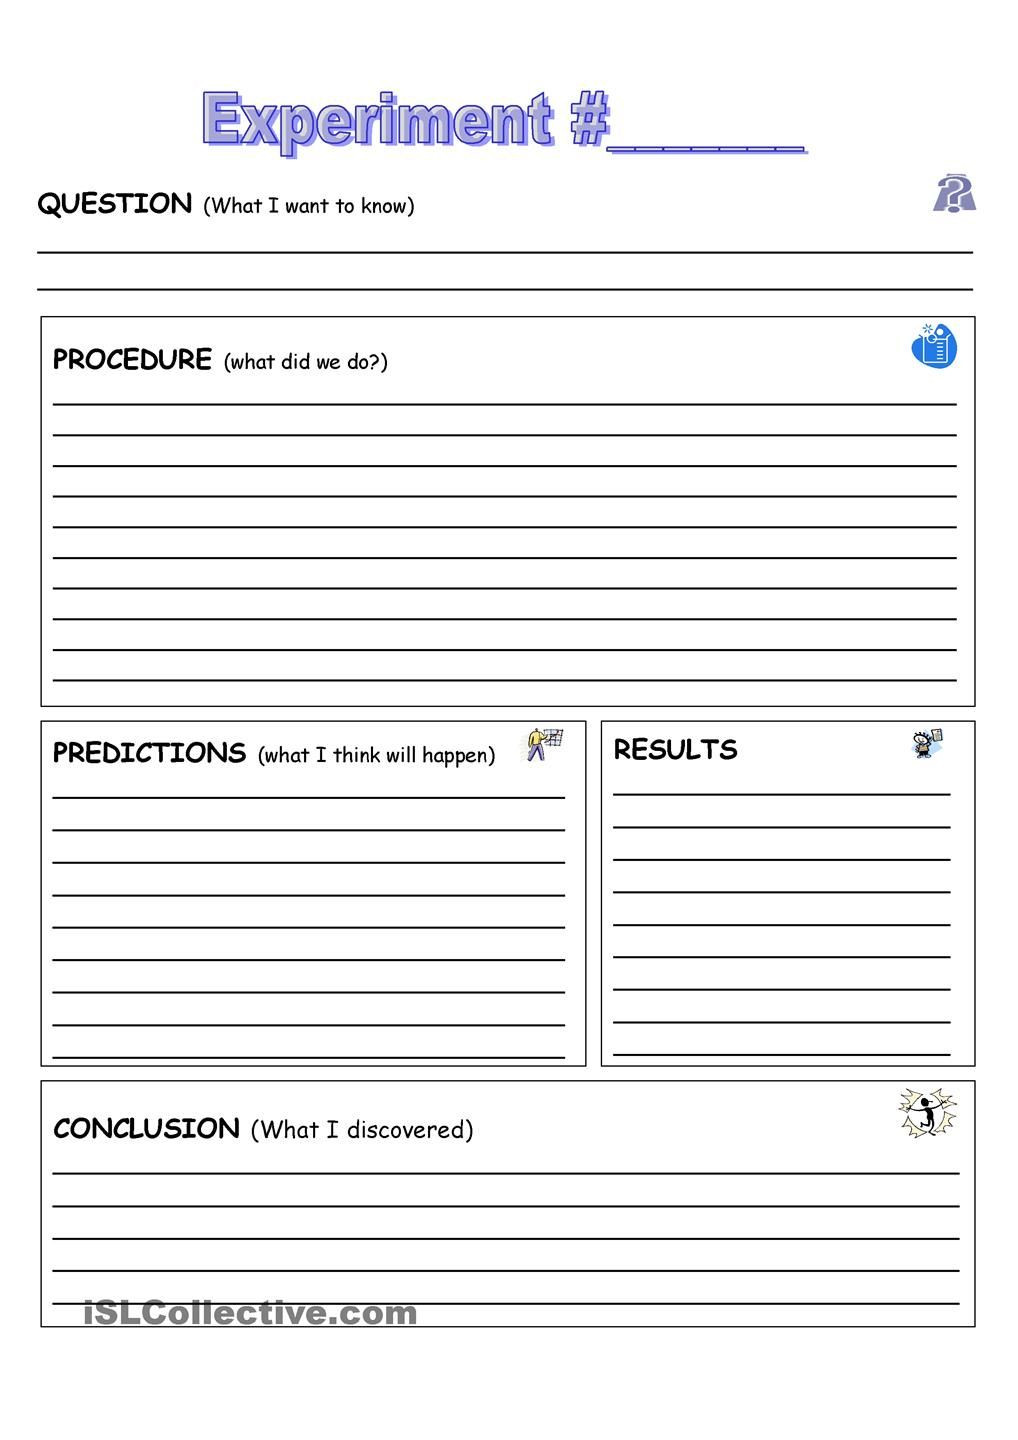 Coordinate Grid Worksheets 5th Grade Experiment Record Sheet 5th Grade Science Worksheets Lab